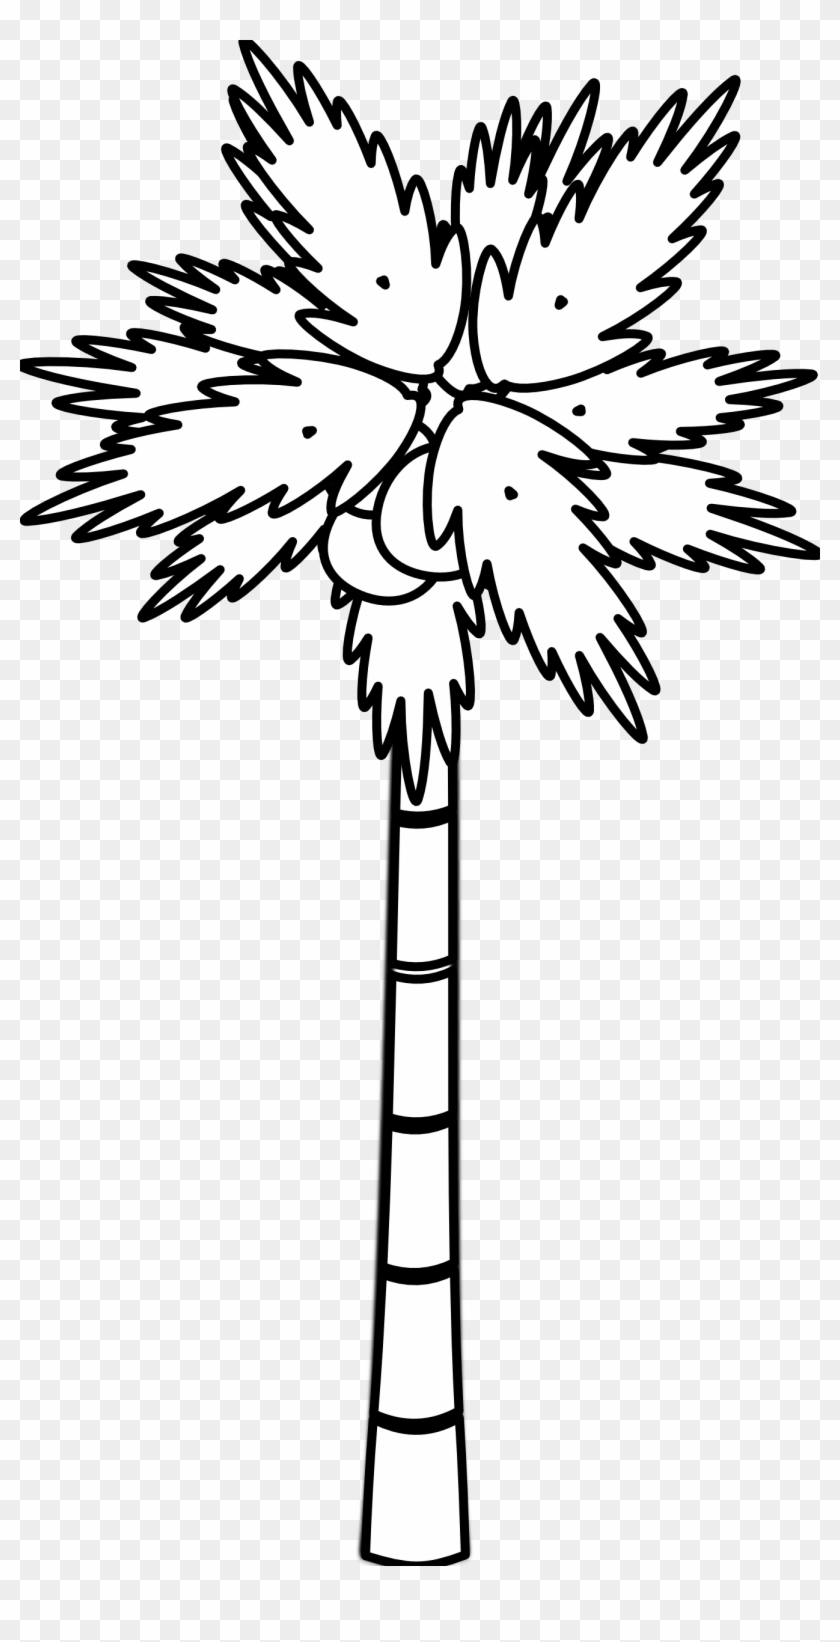 Palm Tree Clip Art Black And White - Palm Tree Clip Art Black And White #348